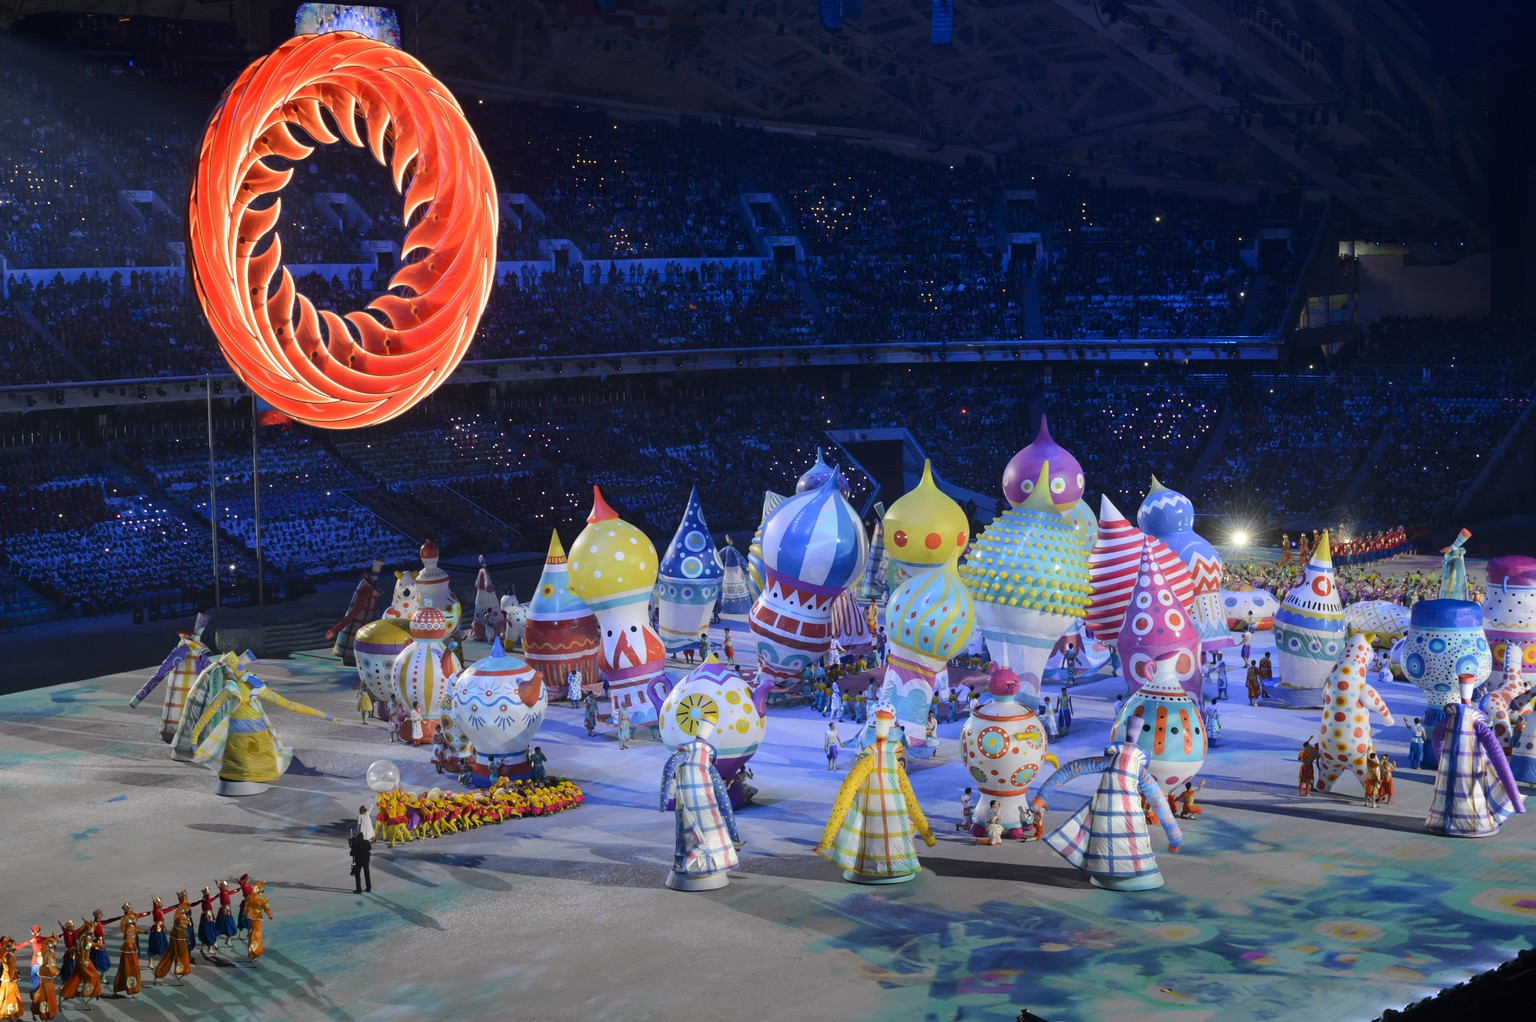 Artists perform during the opening ceremony of the XXII Winter Olympics 2014 Sochi at the Fisht Olympic Stadium in Sochi, Russia, on Friday, February 7, 2014. (KEYSTONE/Laurent Gillieron)